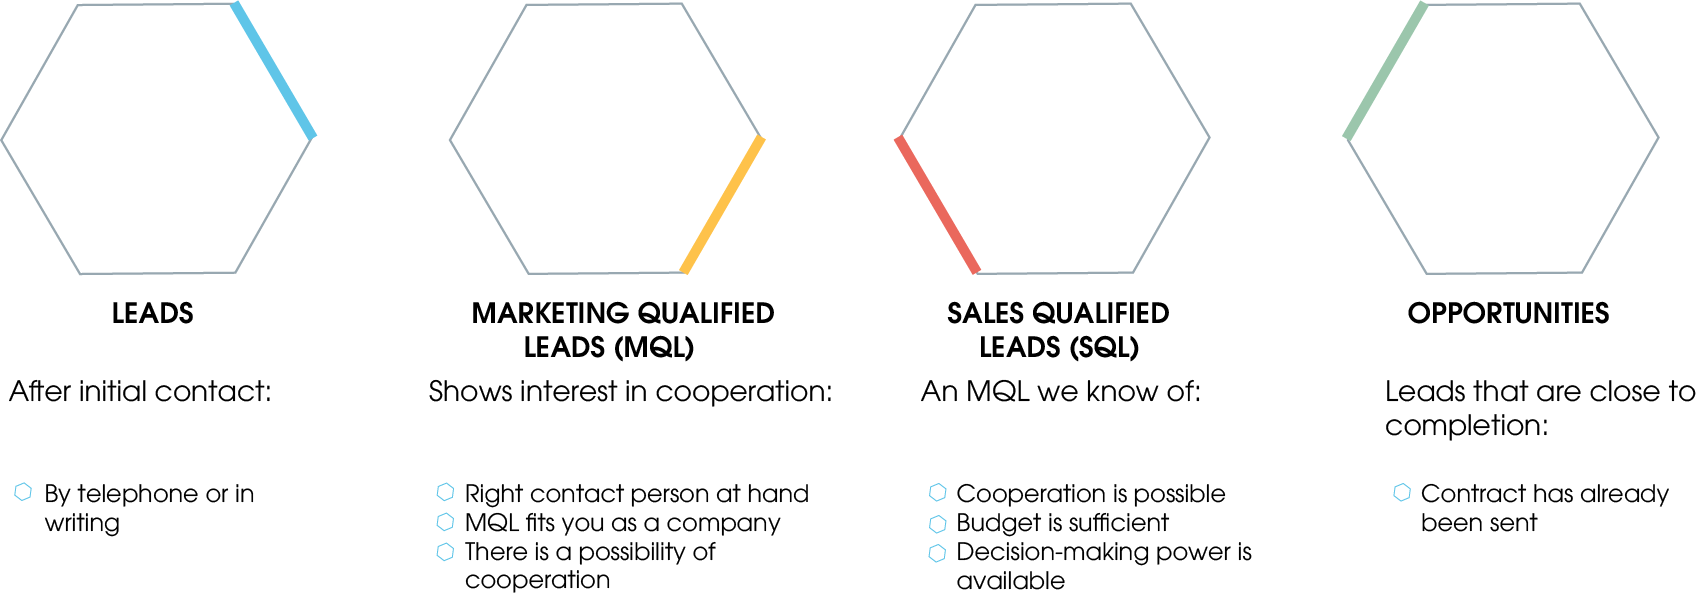 4 Types of leads and their meaning